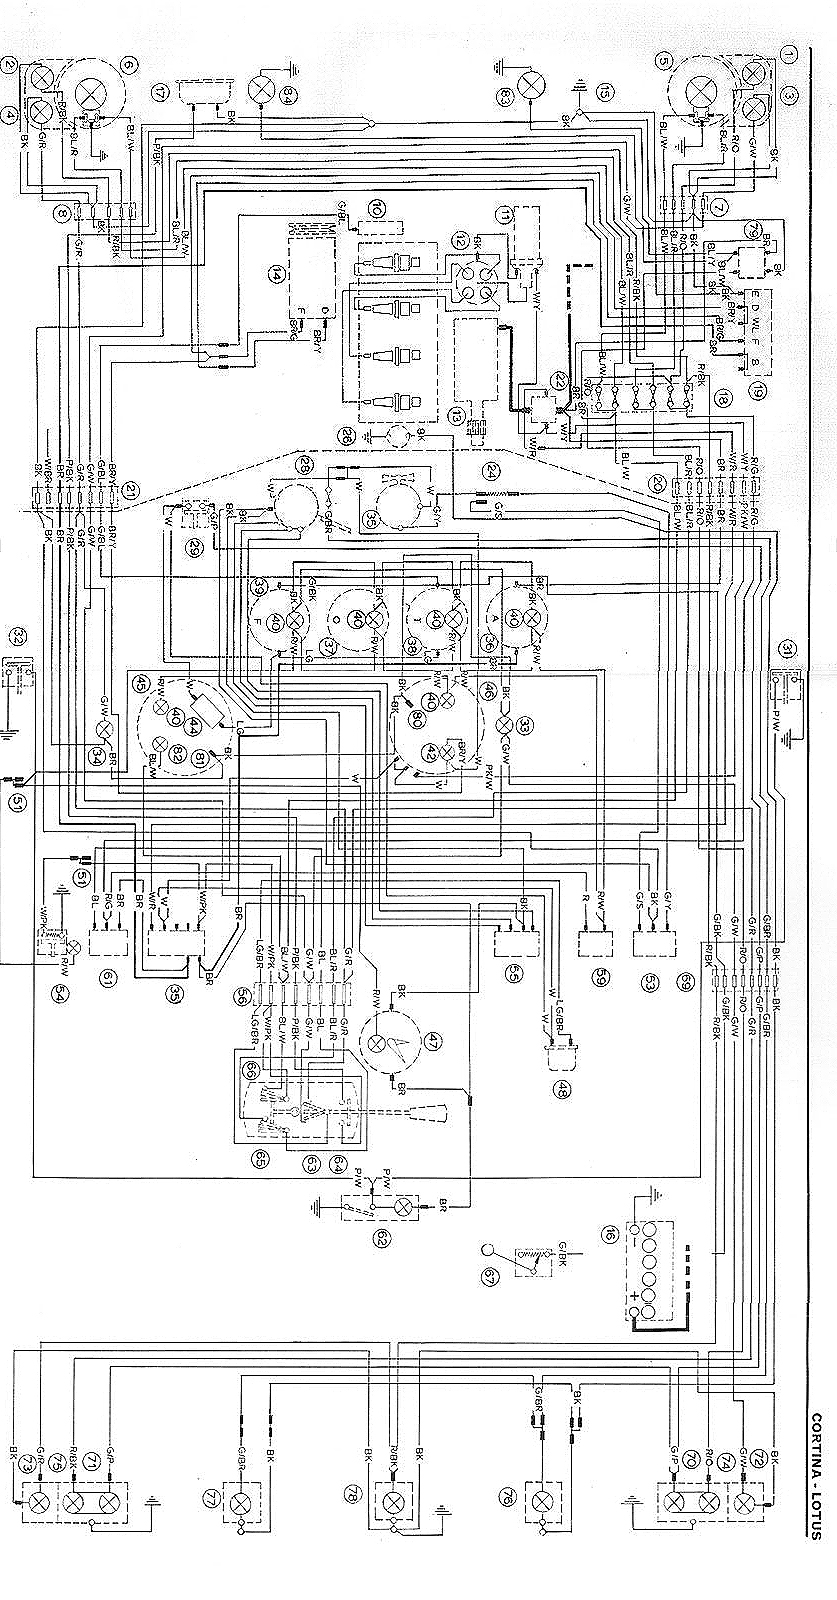 small resolution of ford focus mk1 wiring diagram pdf auto engine and parts diagram 1937 ford wiring diagram ford